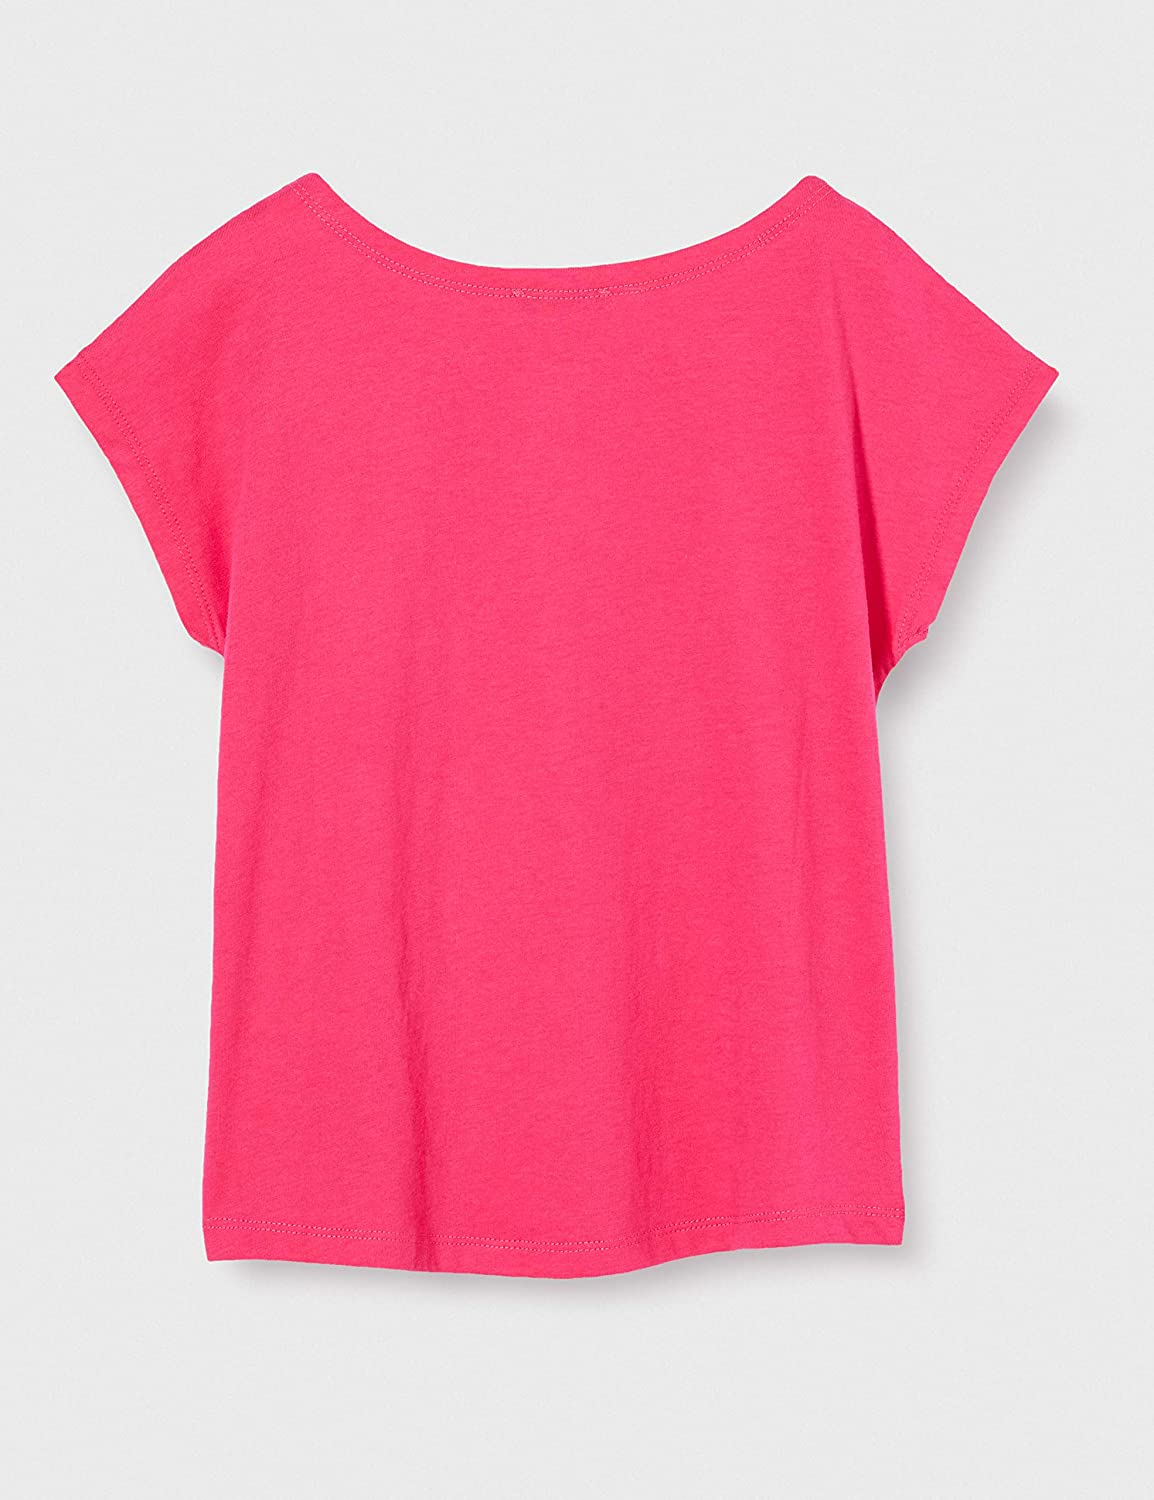 UNITED COLORS OF BENETTON T-Shirt Pull sans Manche Fille